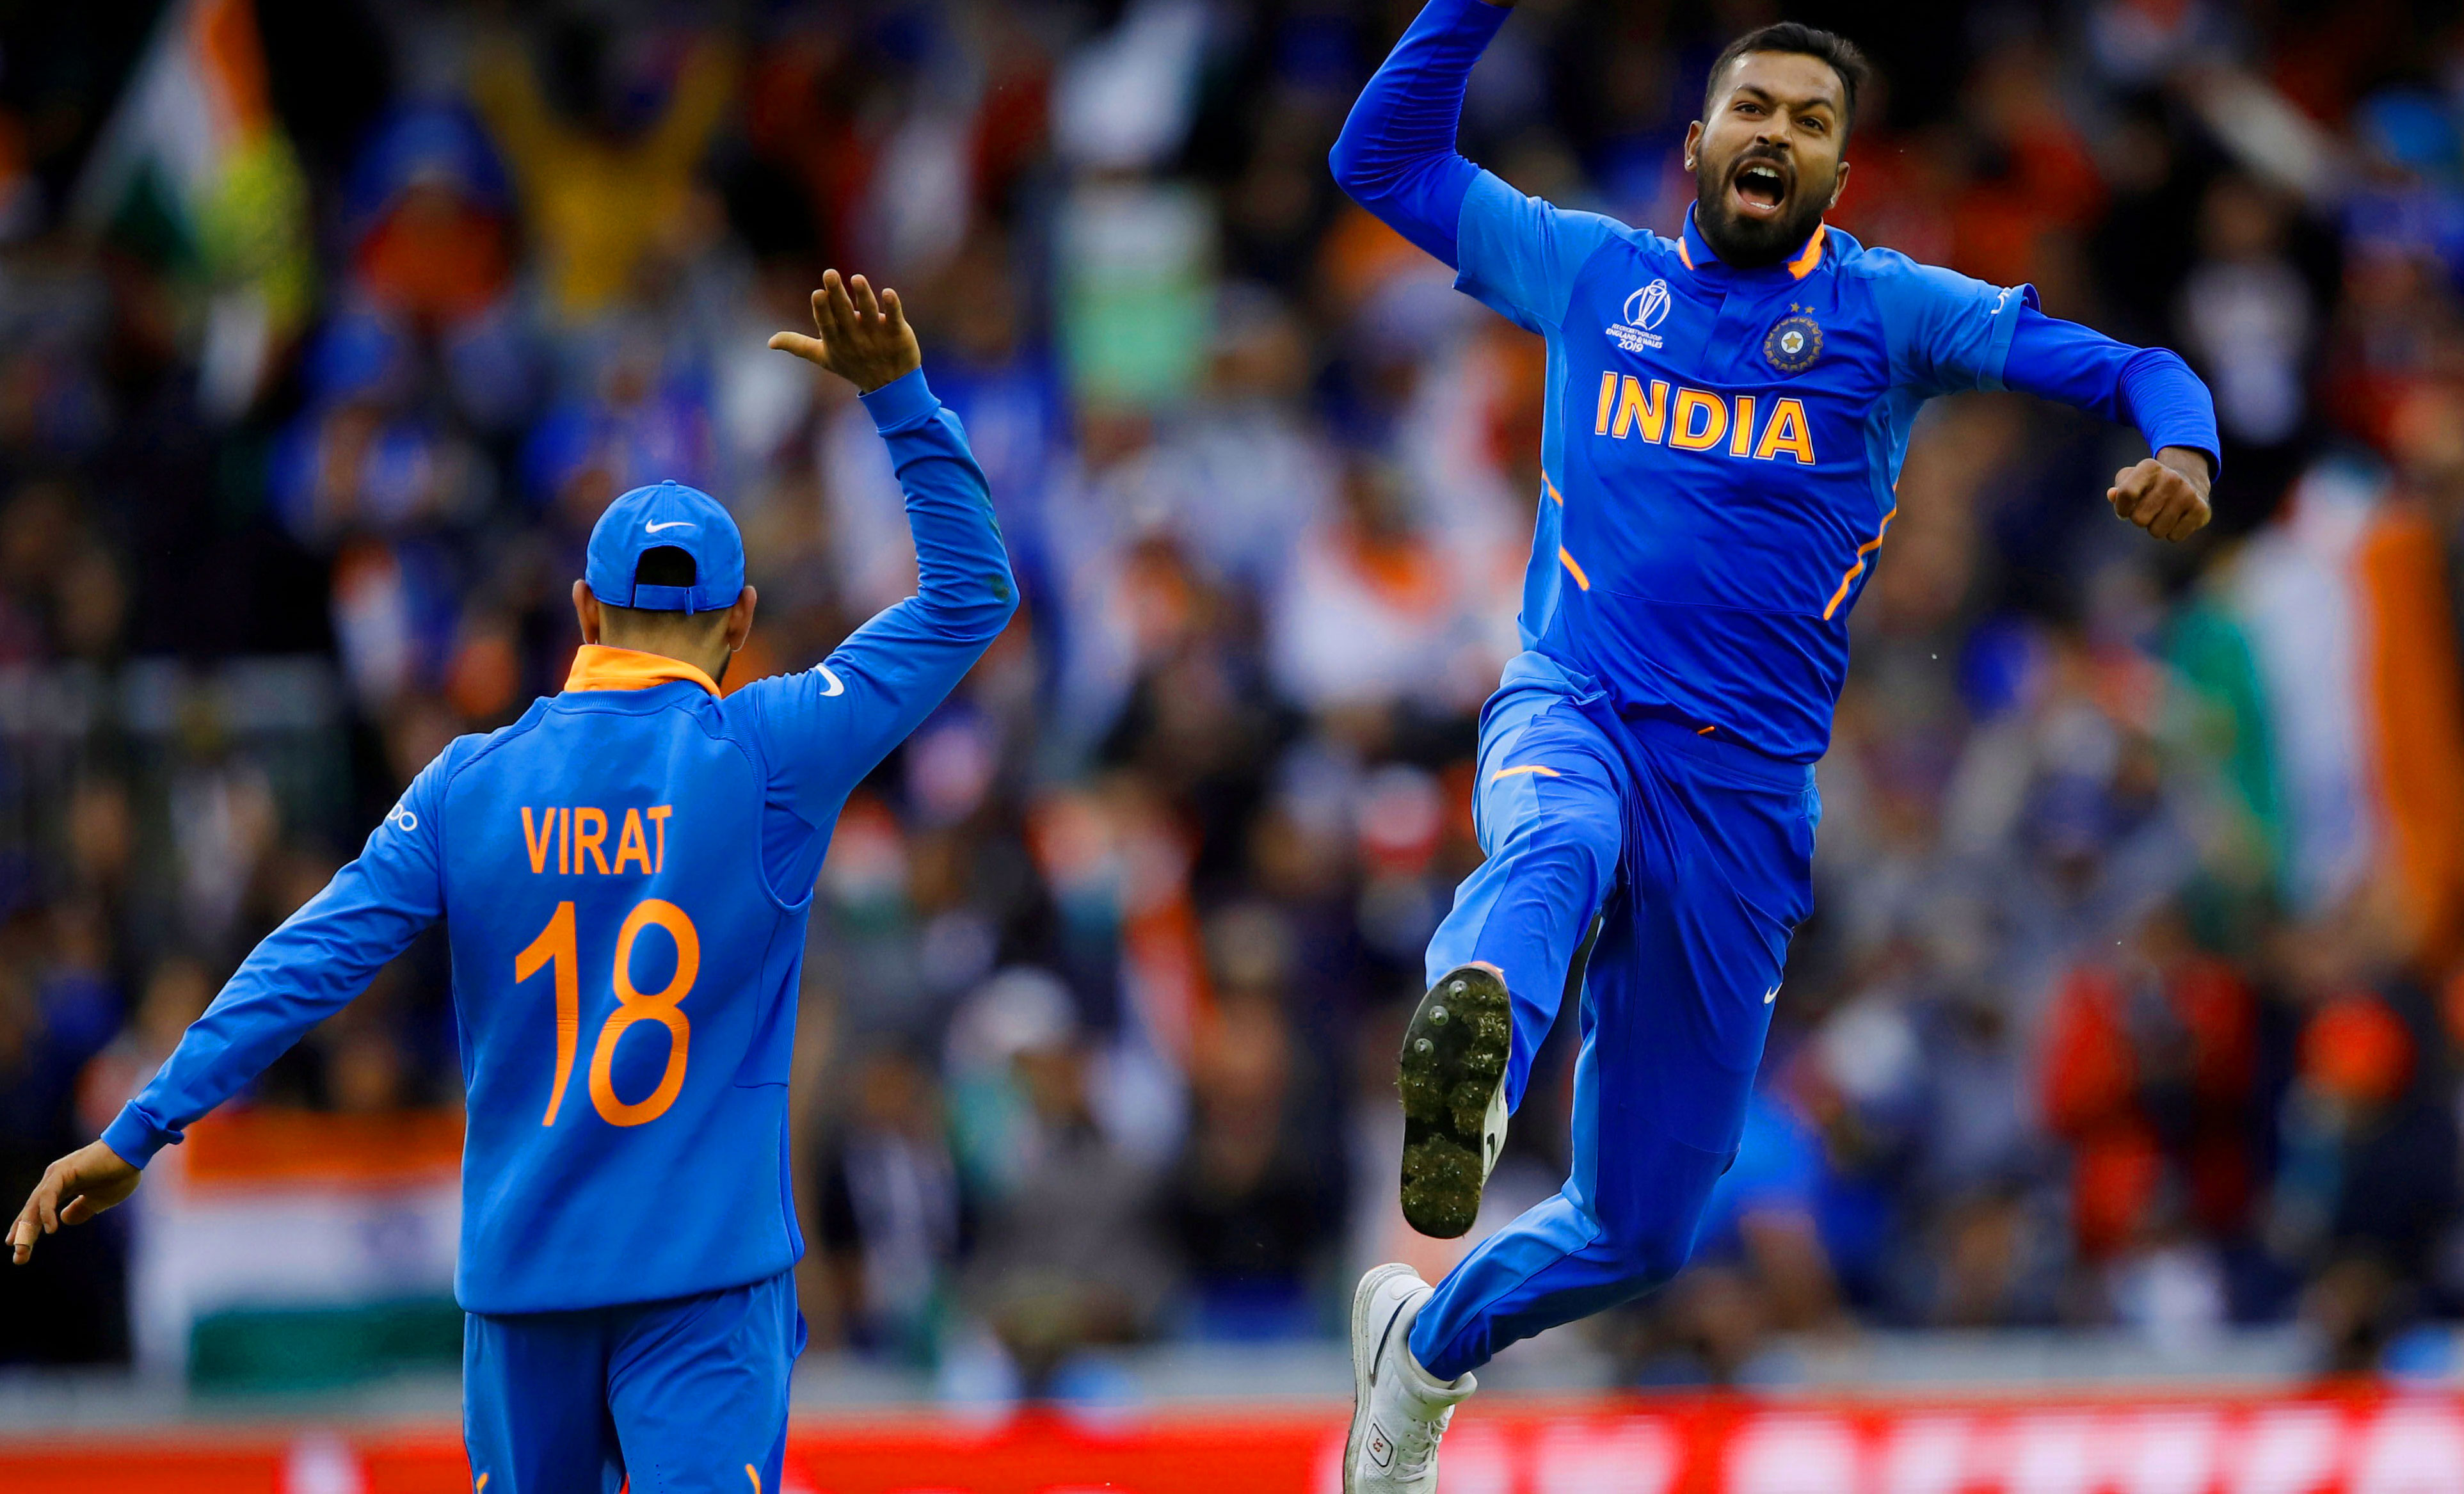 Indian Cricket Team Hd Images Wallpaper Free for Facebook